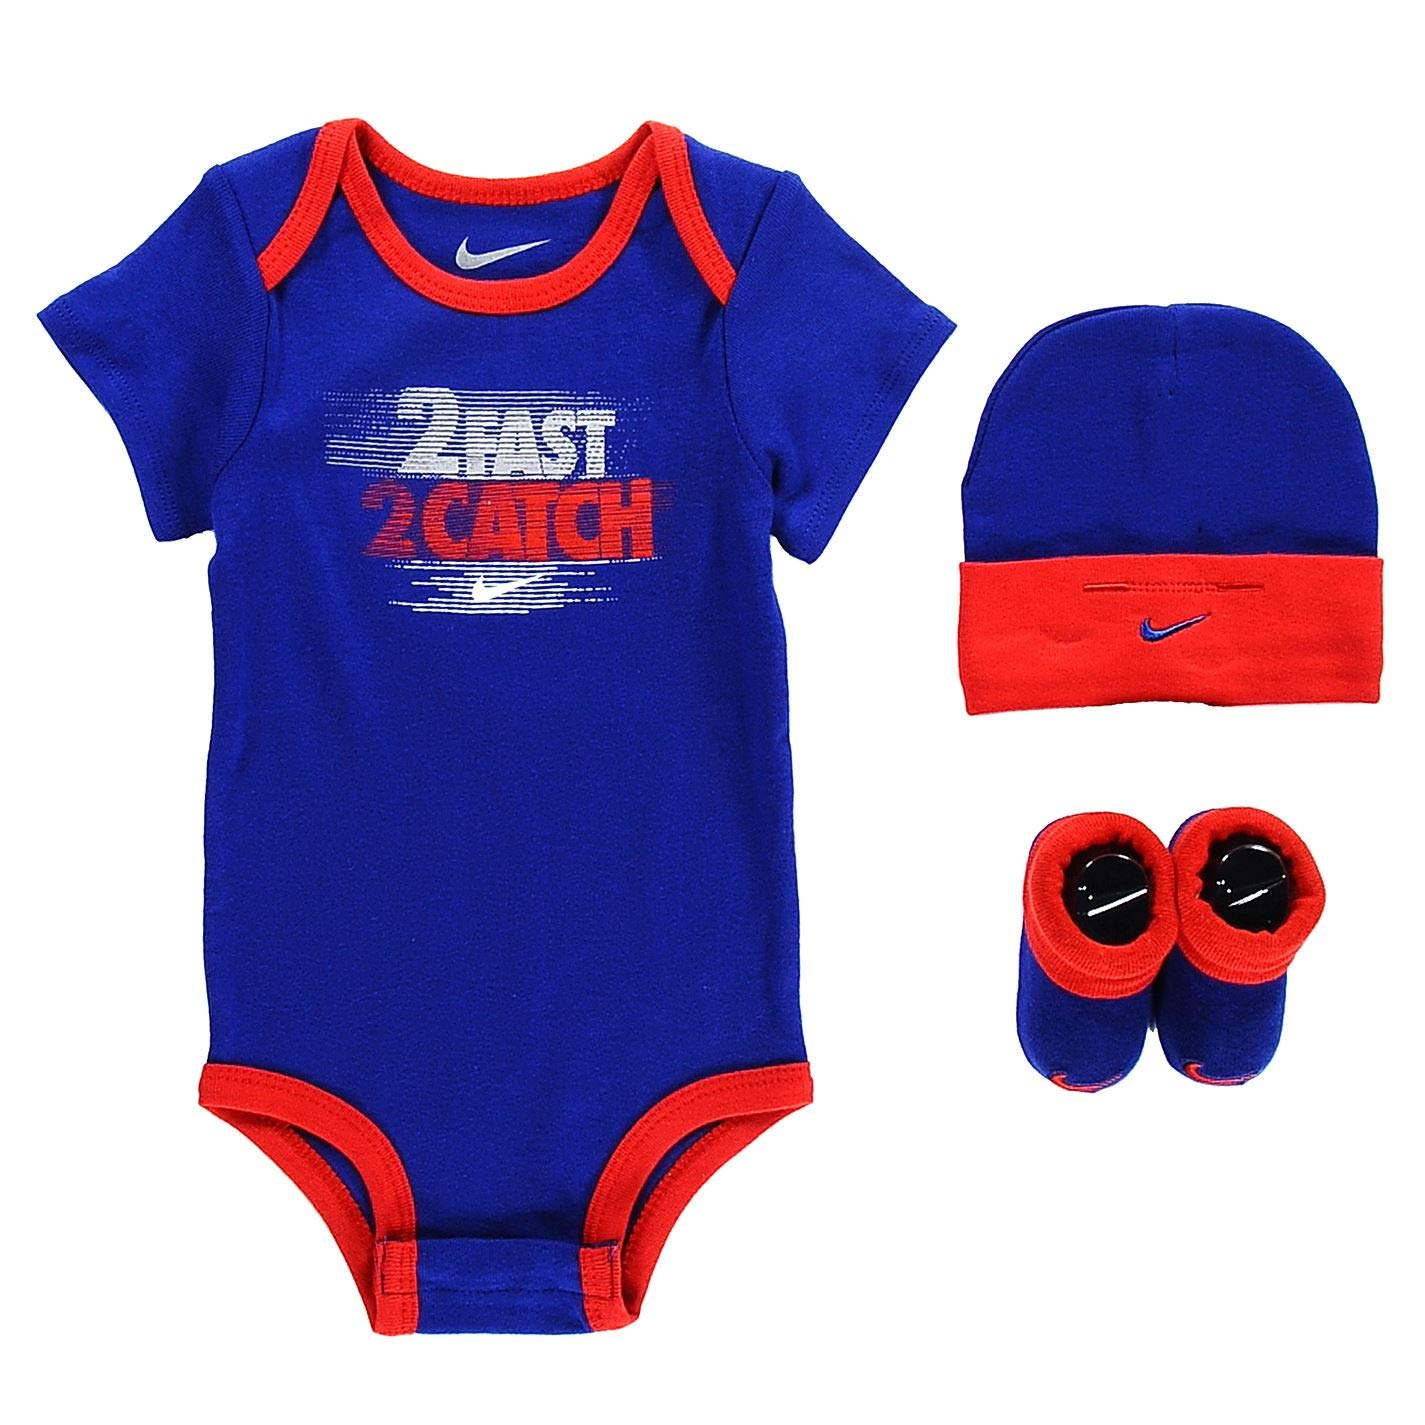 3148ac541 Nike Age 6-12 Months 3 Piece Infant Set Baby Set Hat Beanie Bootie Shoes  Baby Boys Romper Royal Blue/Red